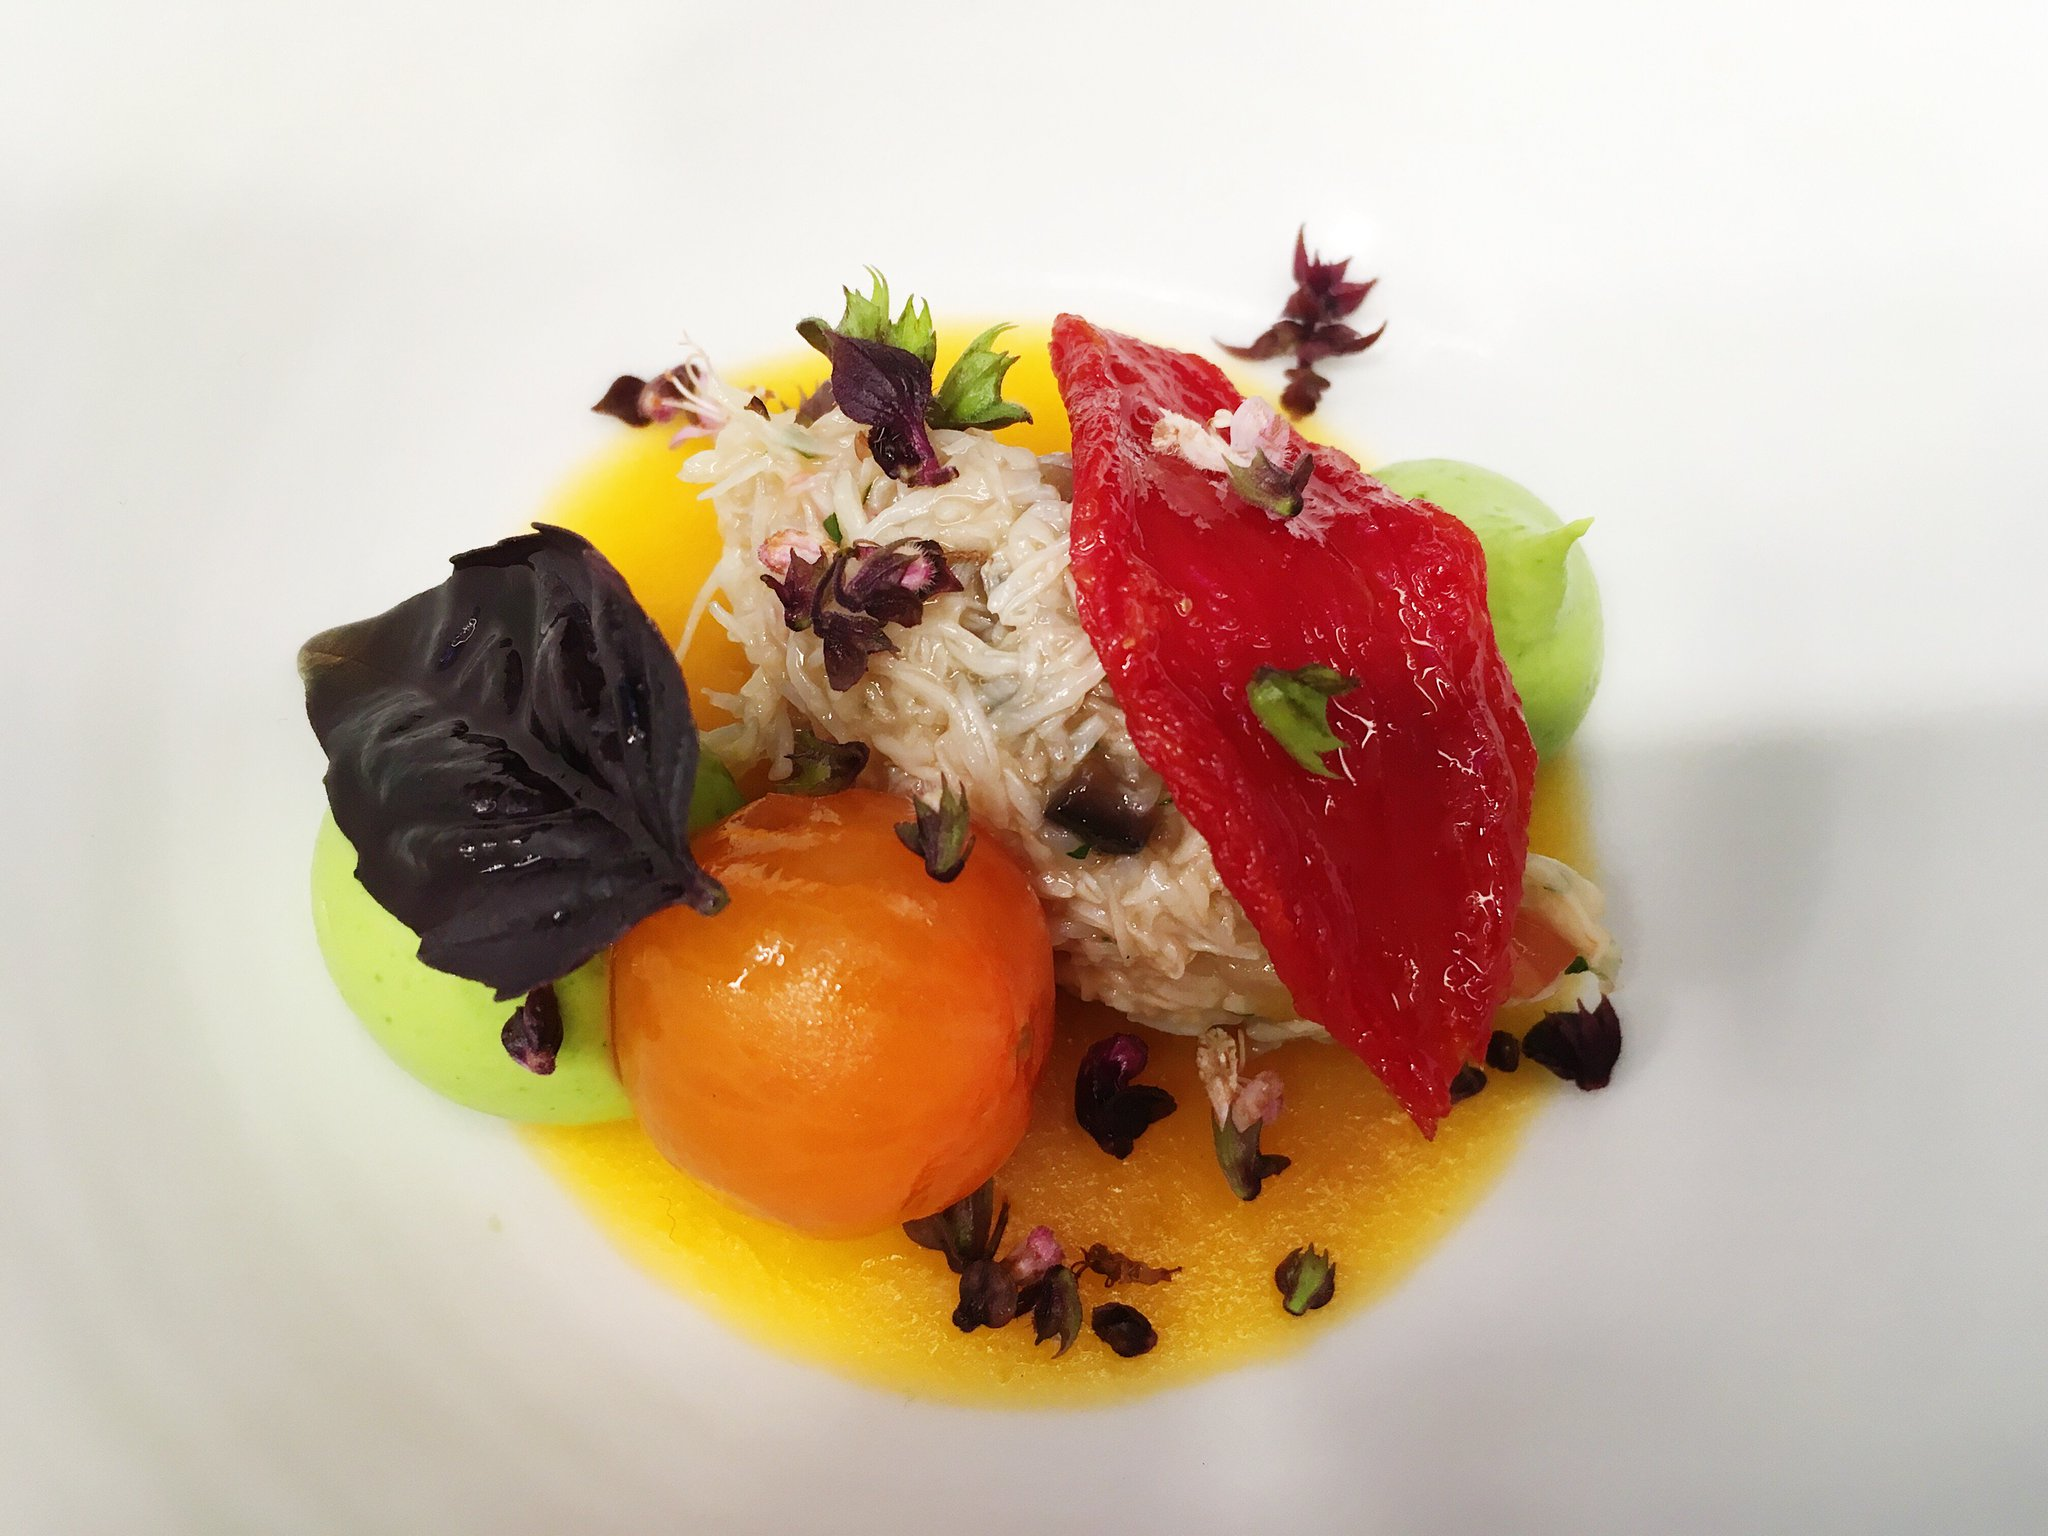 The French Laundry On Twitter Peekytoe Crab With Garden Tomatoes Brokaw Avocado Mousse And Fragrant Basil Peekytoecrab